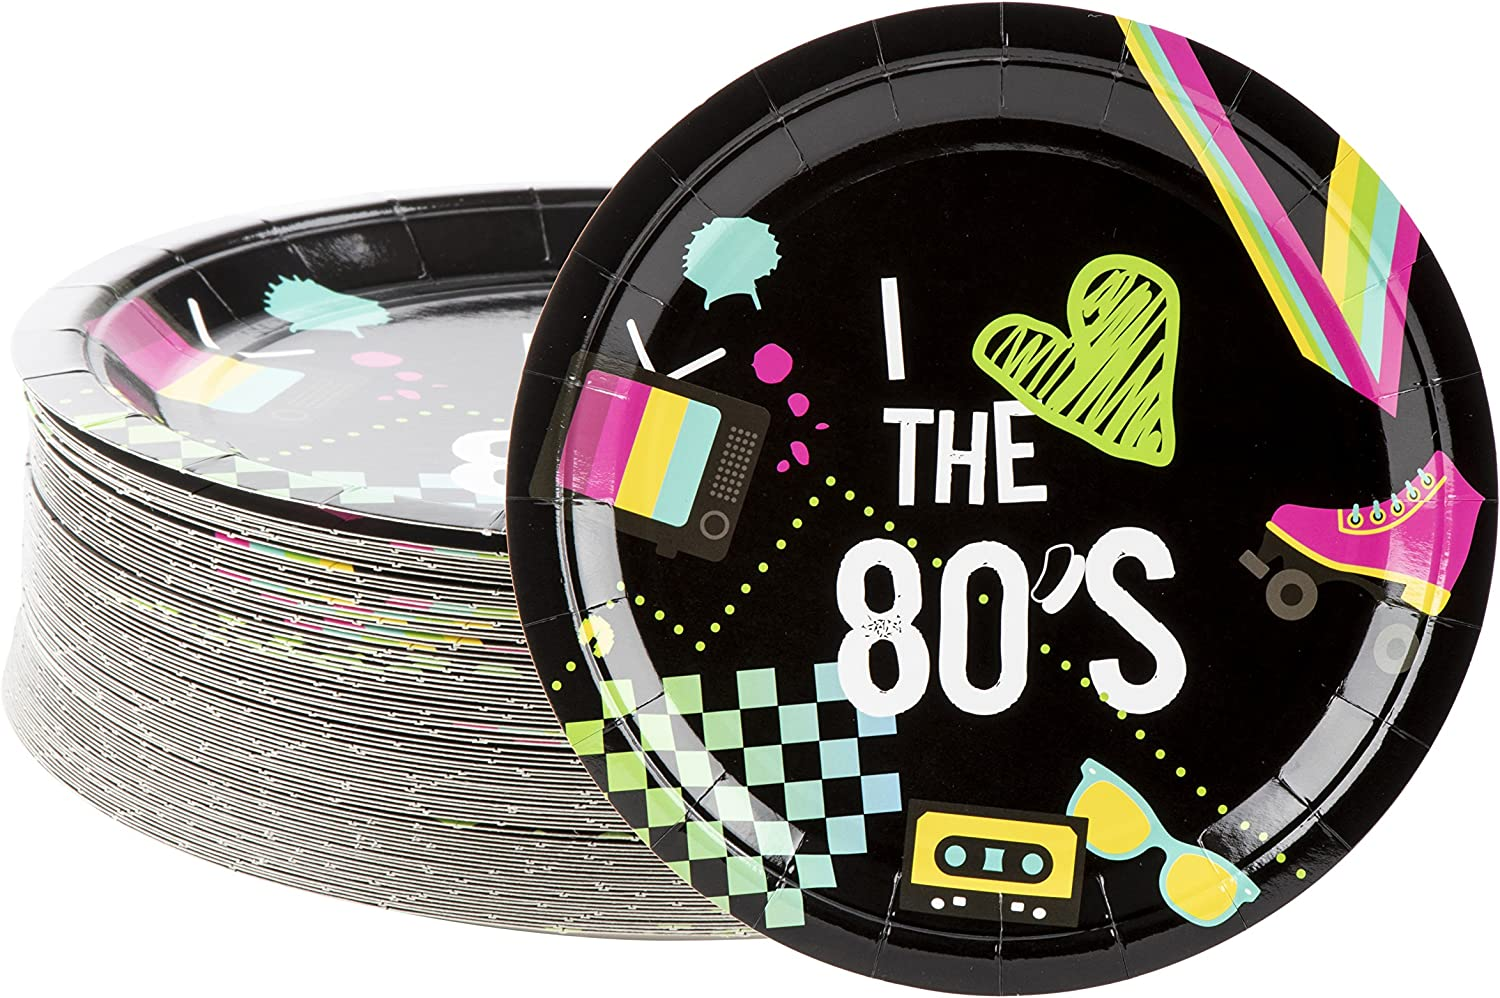 80 Pack of Paper Plates for 80's Party Decorations (9 Inches)